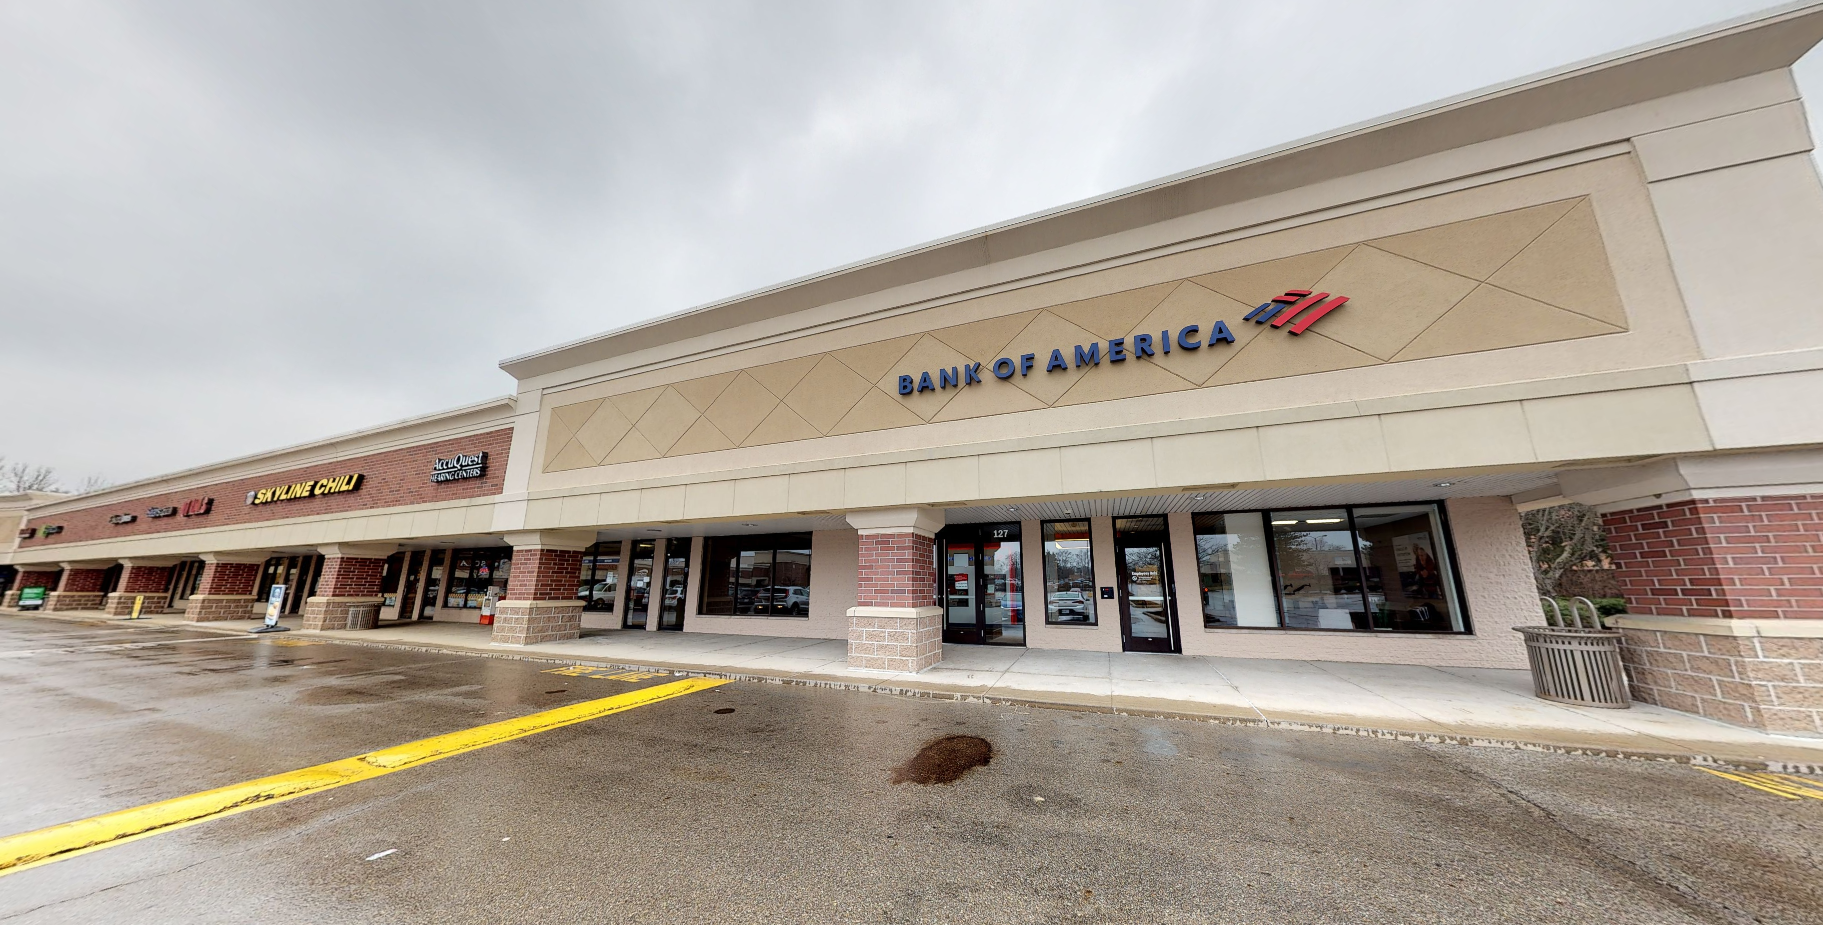 Bank of America financial center with walk-up ATM   127 Westerville Plaza, Westerville, OH 43081